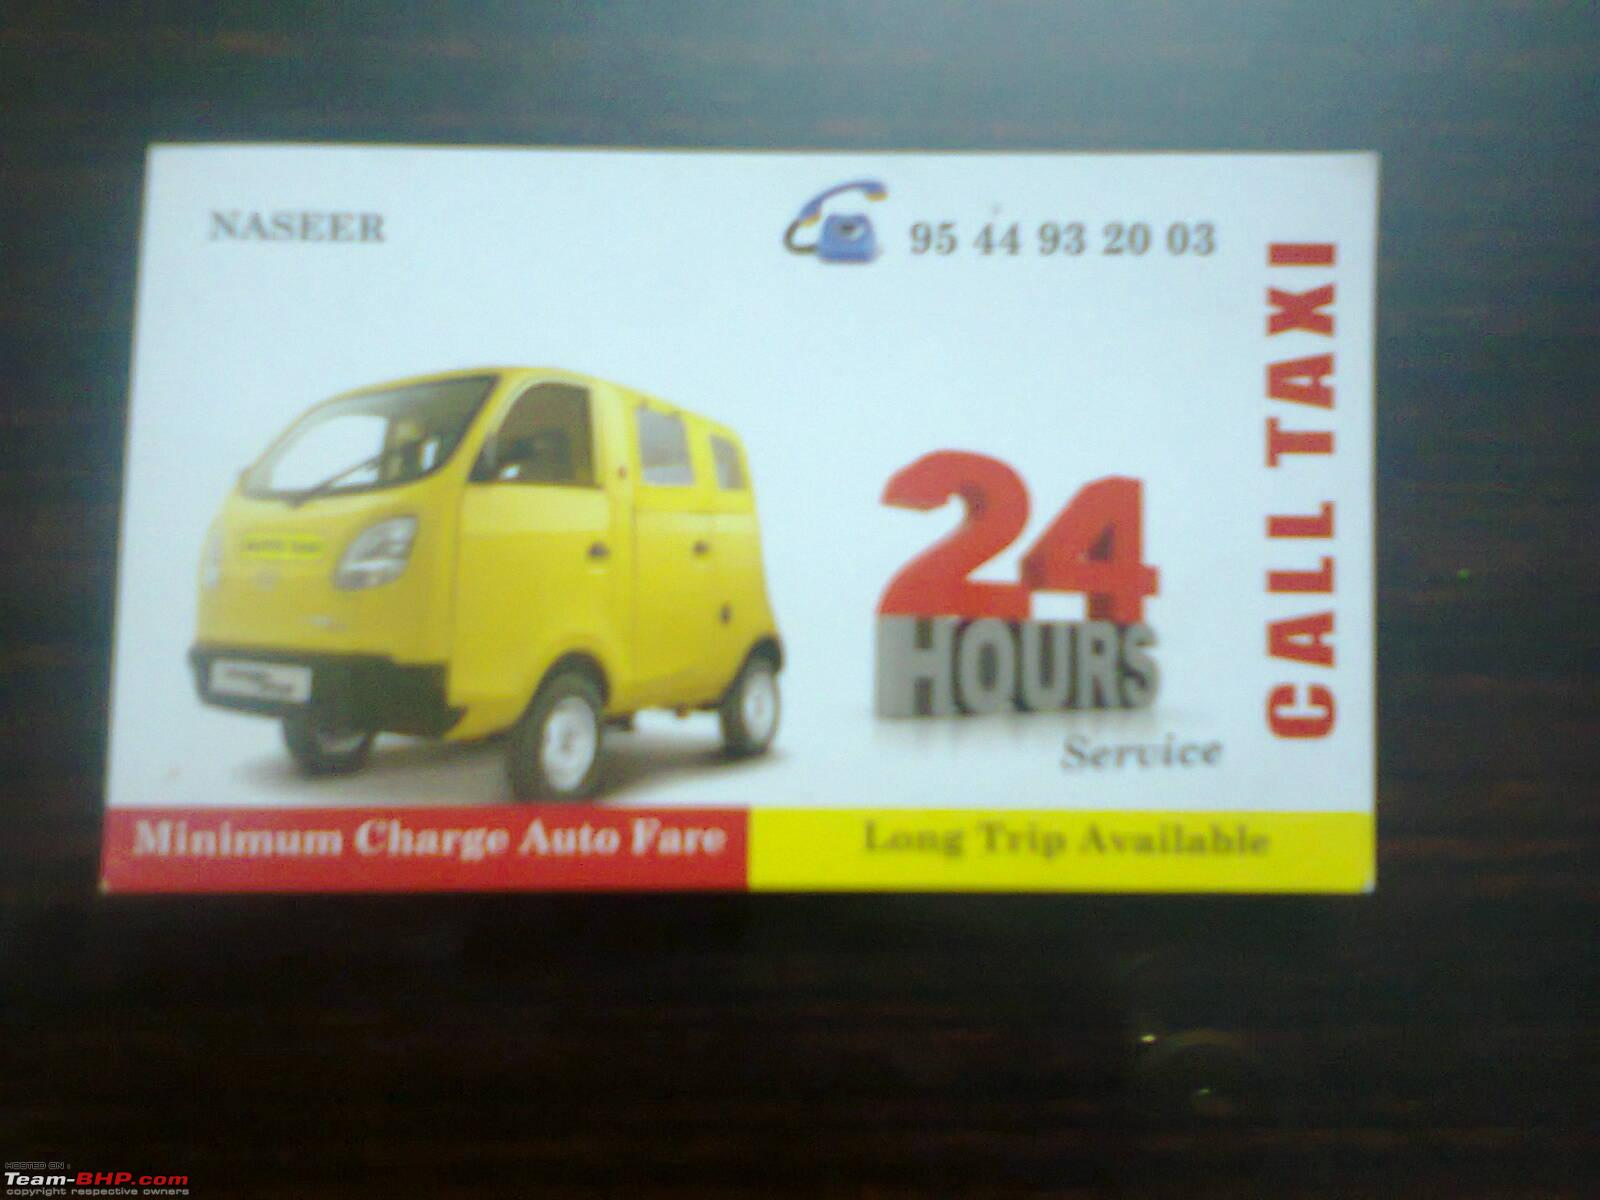 Awesome Pictures Of Taxi Driver Business Card – Business Cards and ...